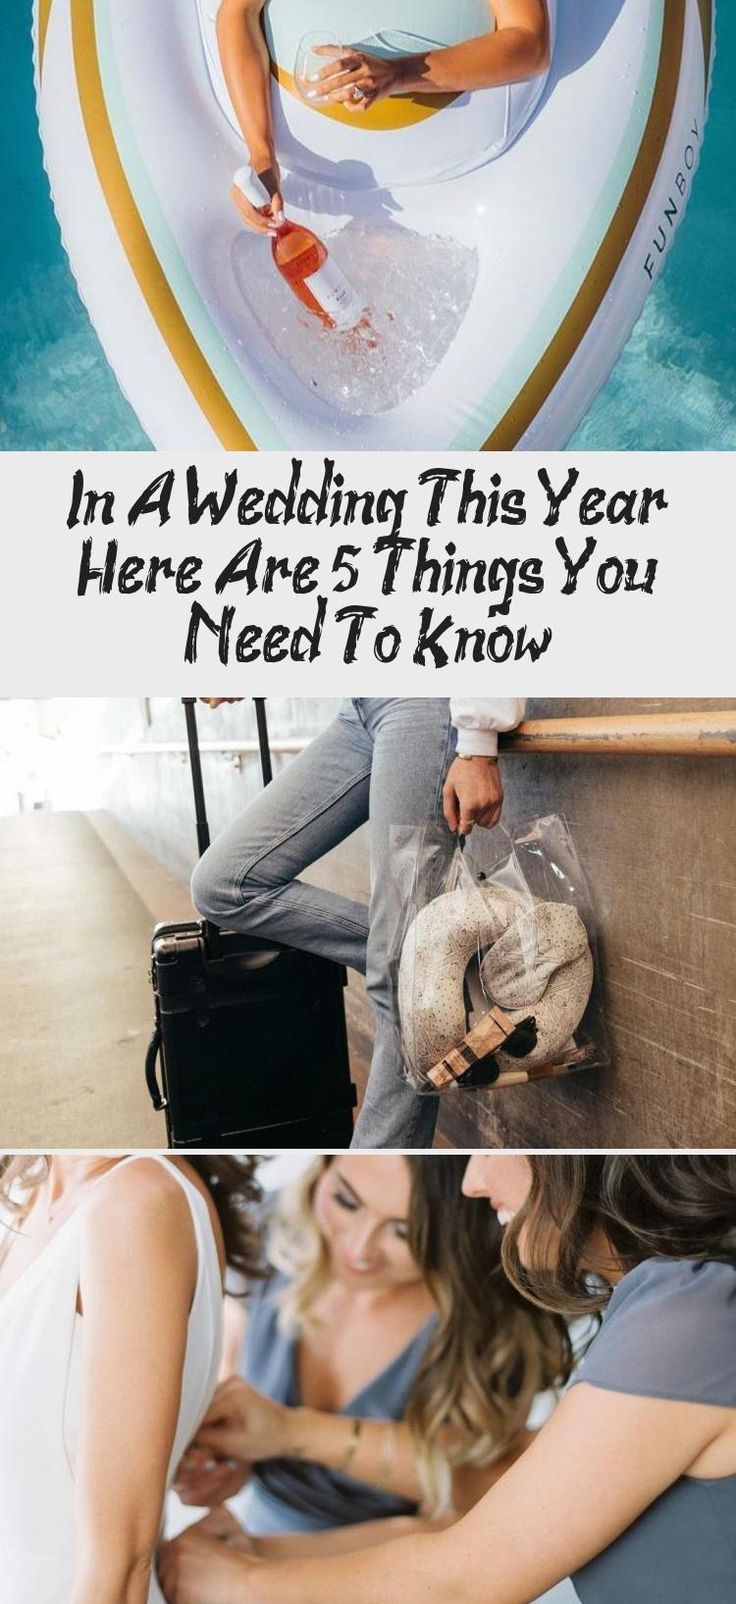 In a Wedding This Year? Here Are 5 Things You Need to Know | The Everygirl #SageBridesmaidDresses #BridesmaidDressesTwoPiece #TaupeBridesmaidDresses #BridesmaidDressesHijab #PeachBridesmaidDresses